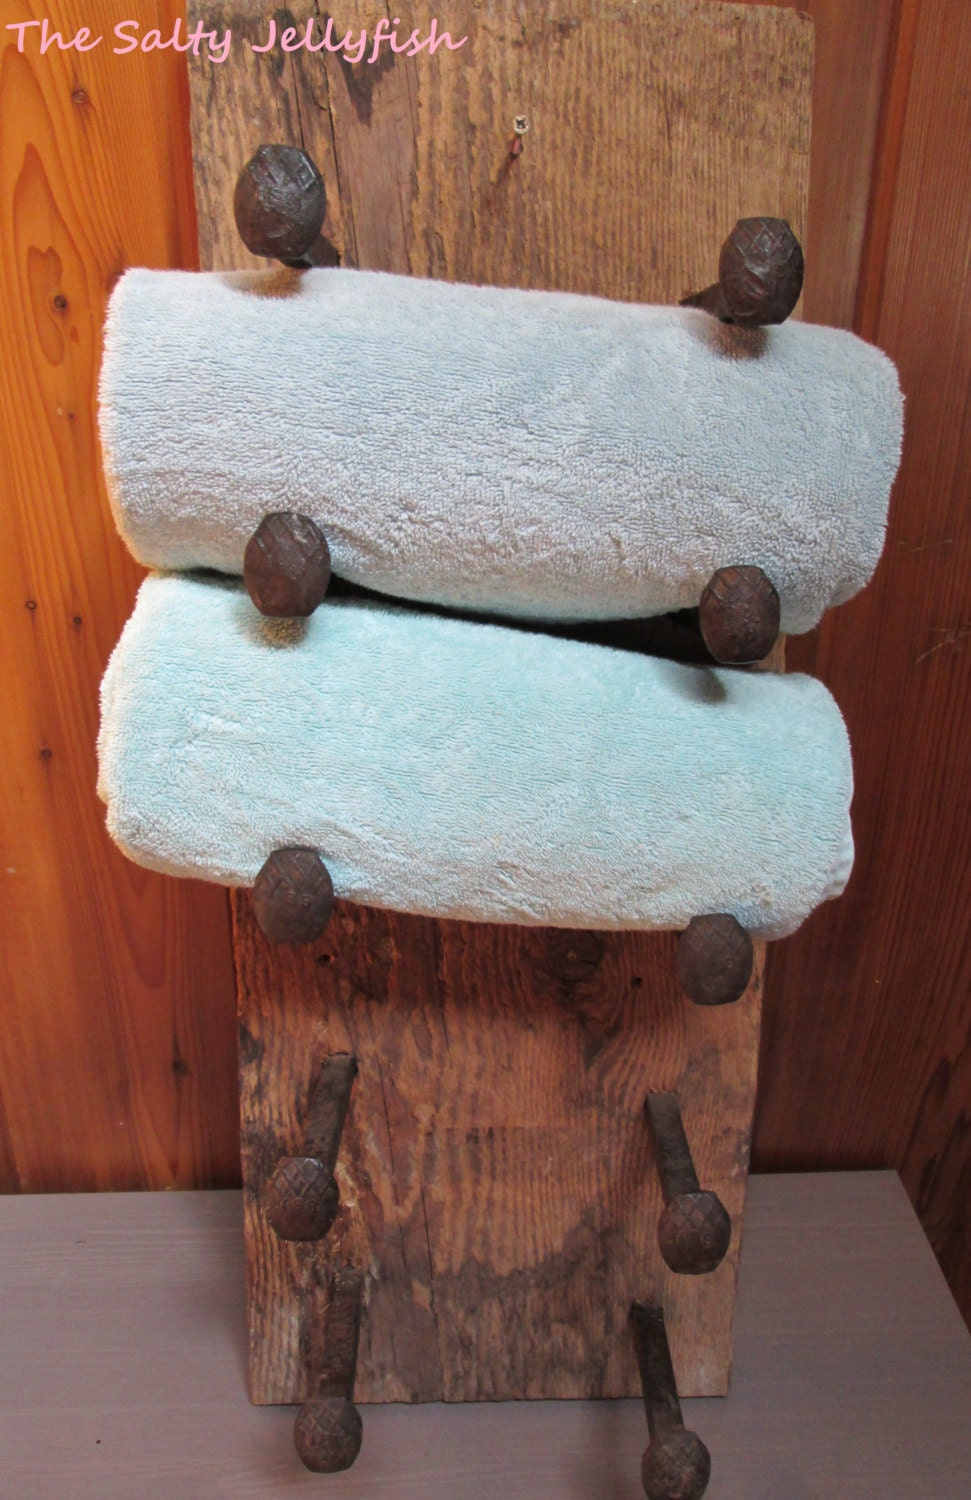 Hand Towel Holder Rustic Towel Rack With Industrial Railroad Spike